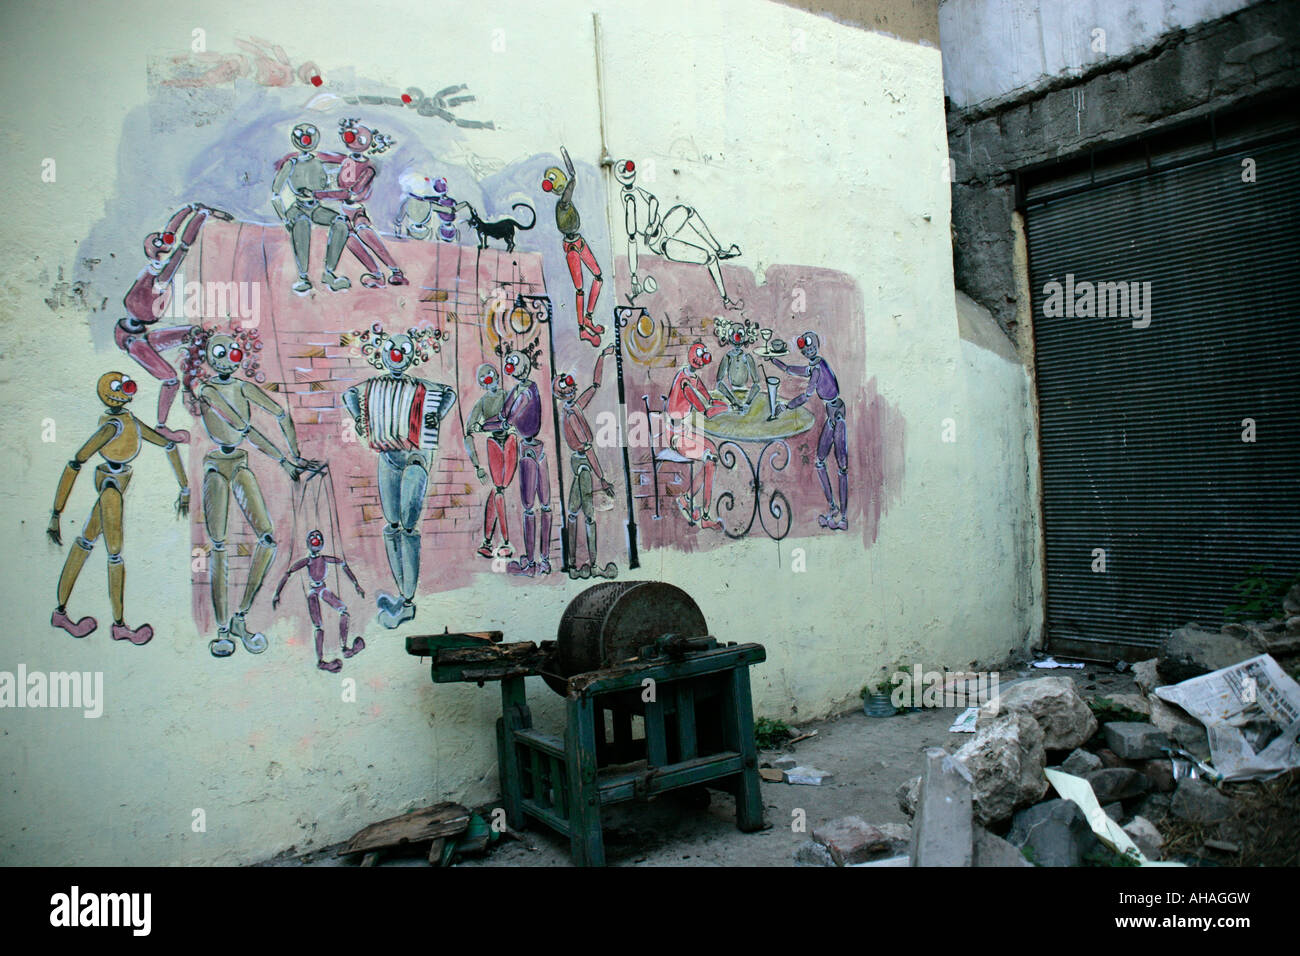 Graffiti showing stylised performers and entertainment in an urban area of Istanbul - Stock Image